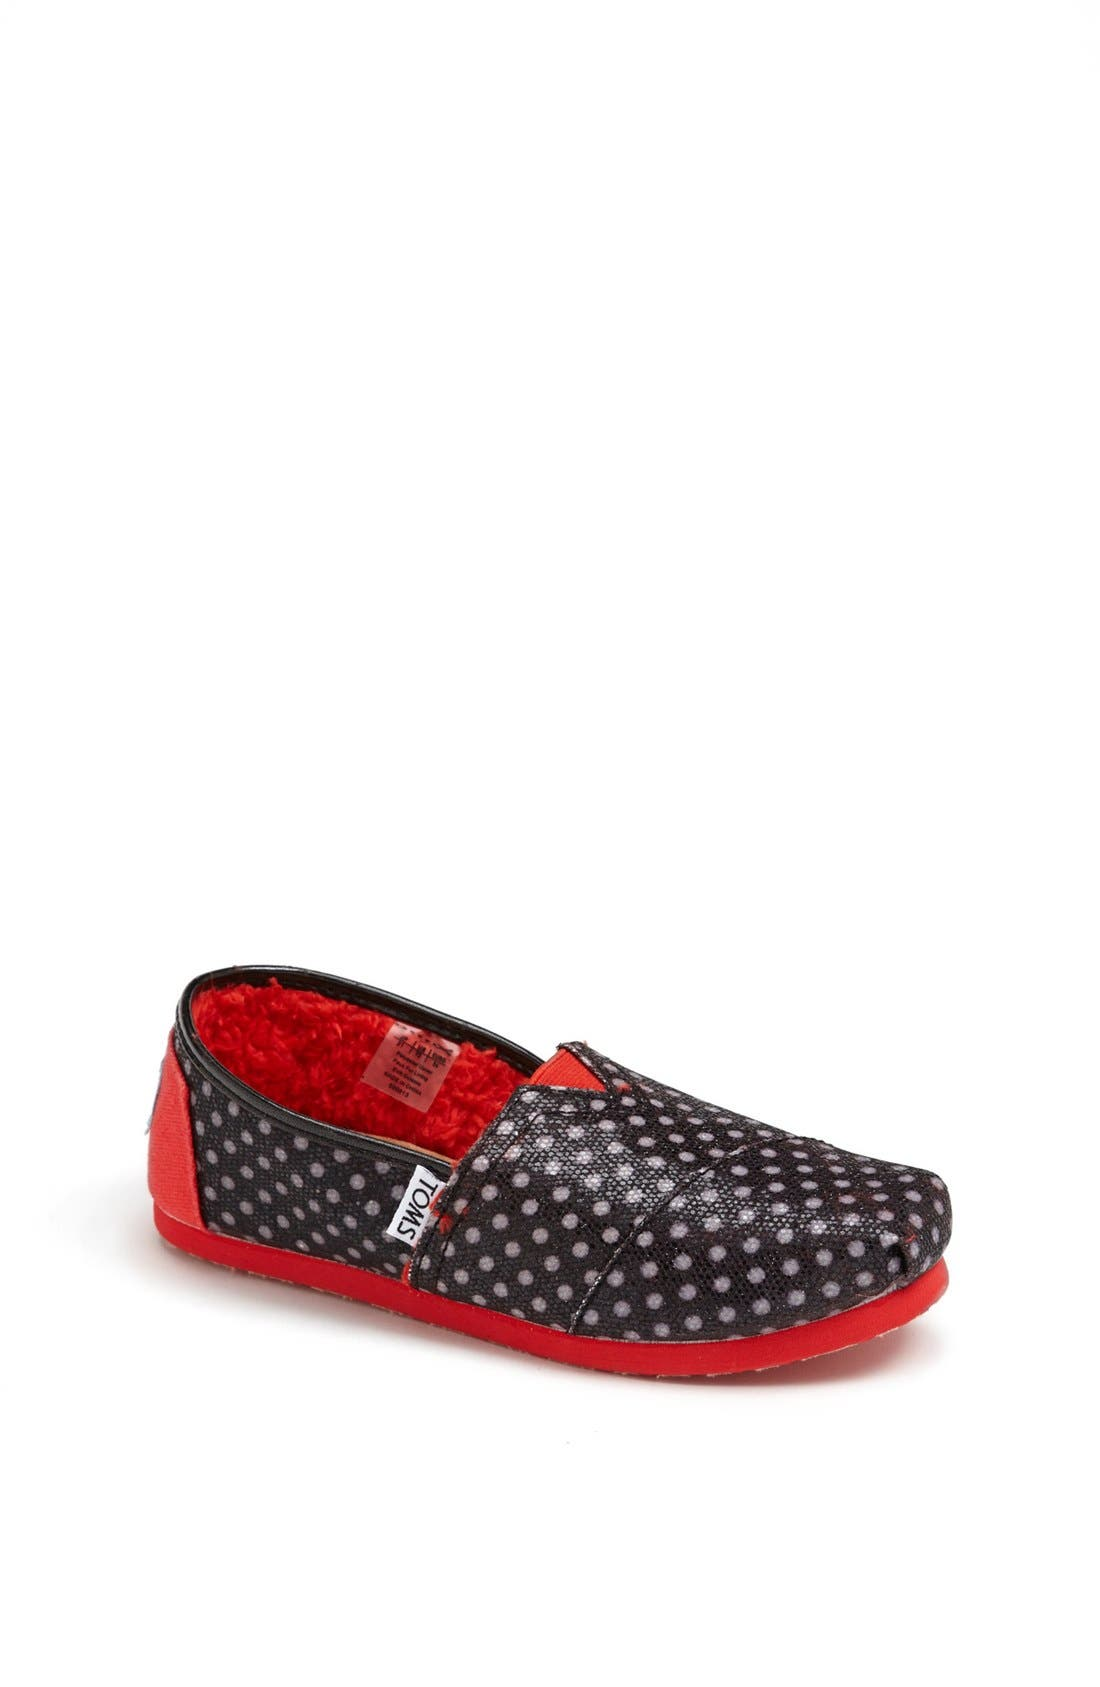 Main Image - TOMS 'Classic - Youth' Glitter Dot Slip-On (Toddler, Little Kid & Big Kid)